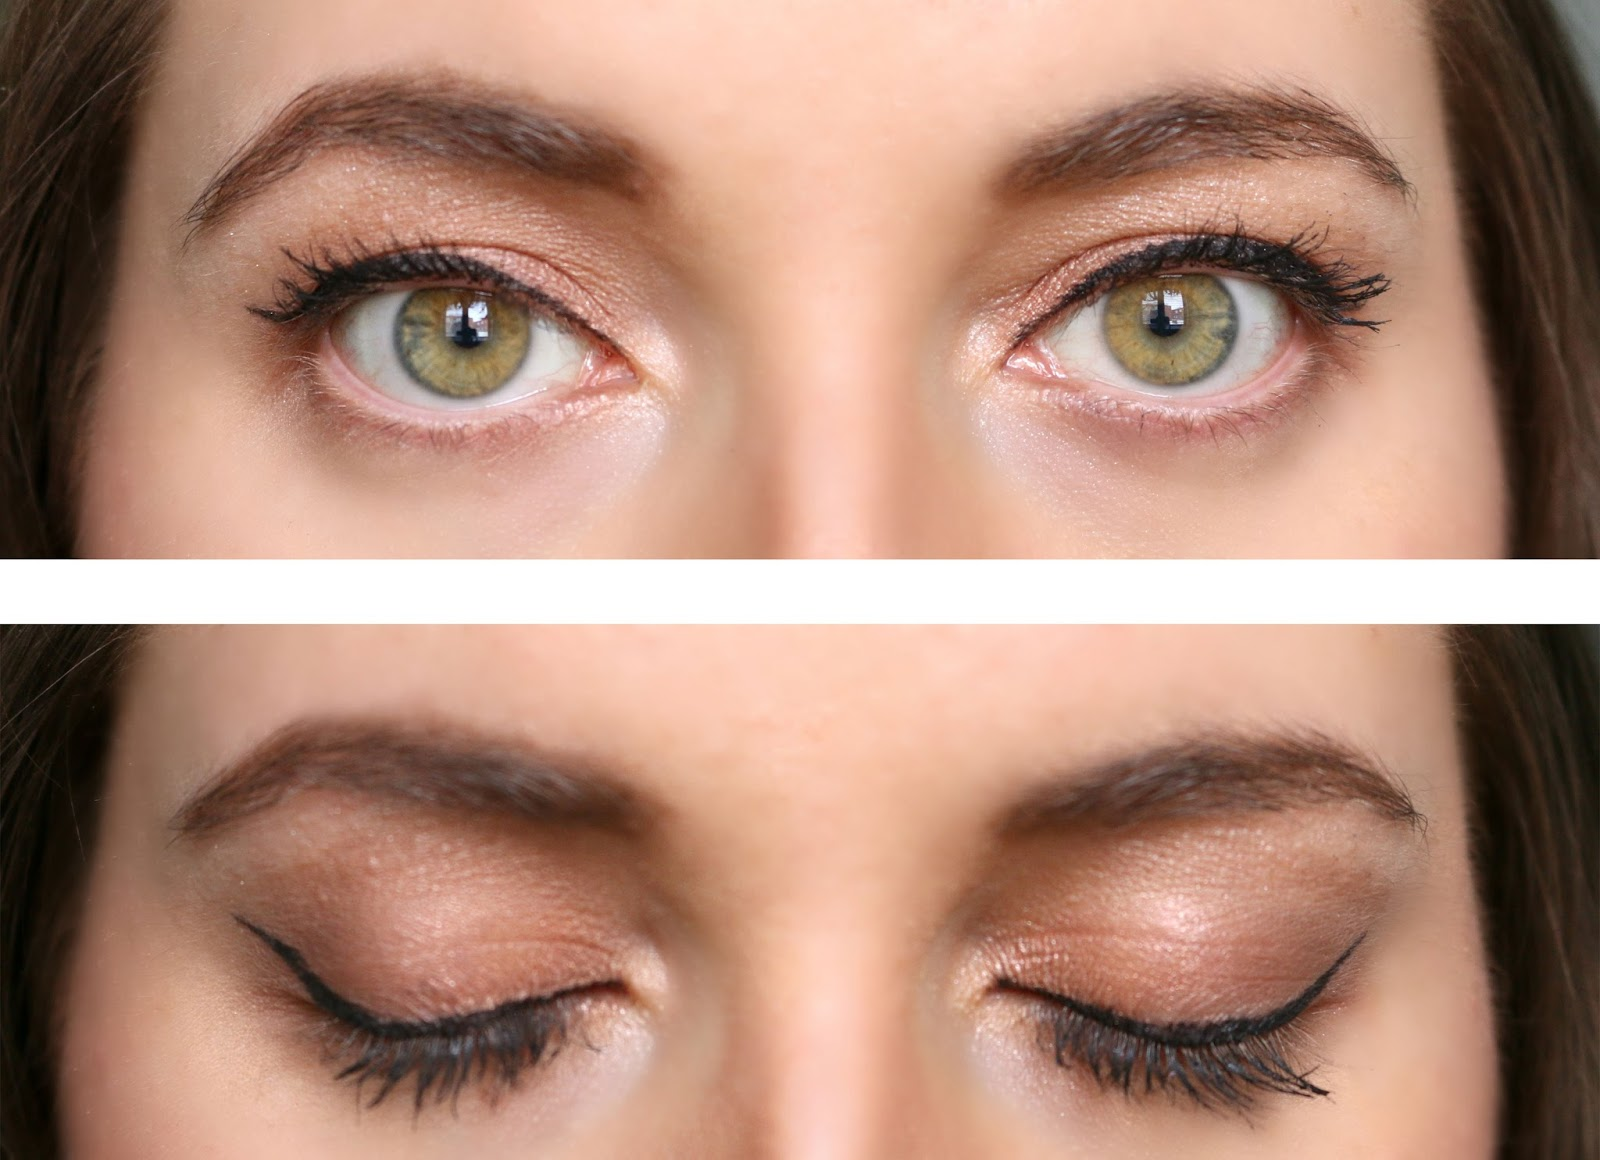 Yves Rocher Spring Makeup Eye Look